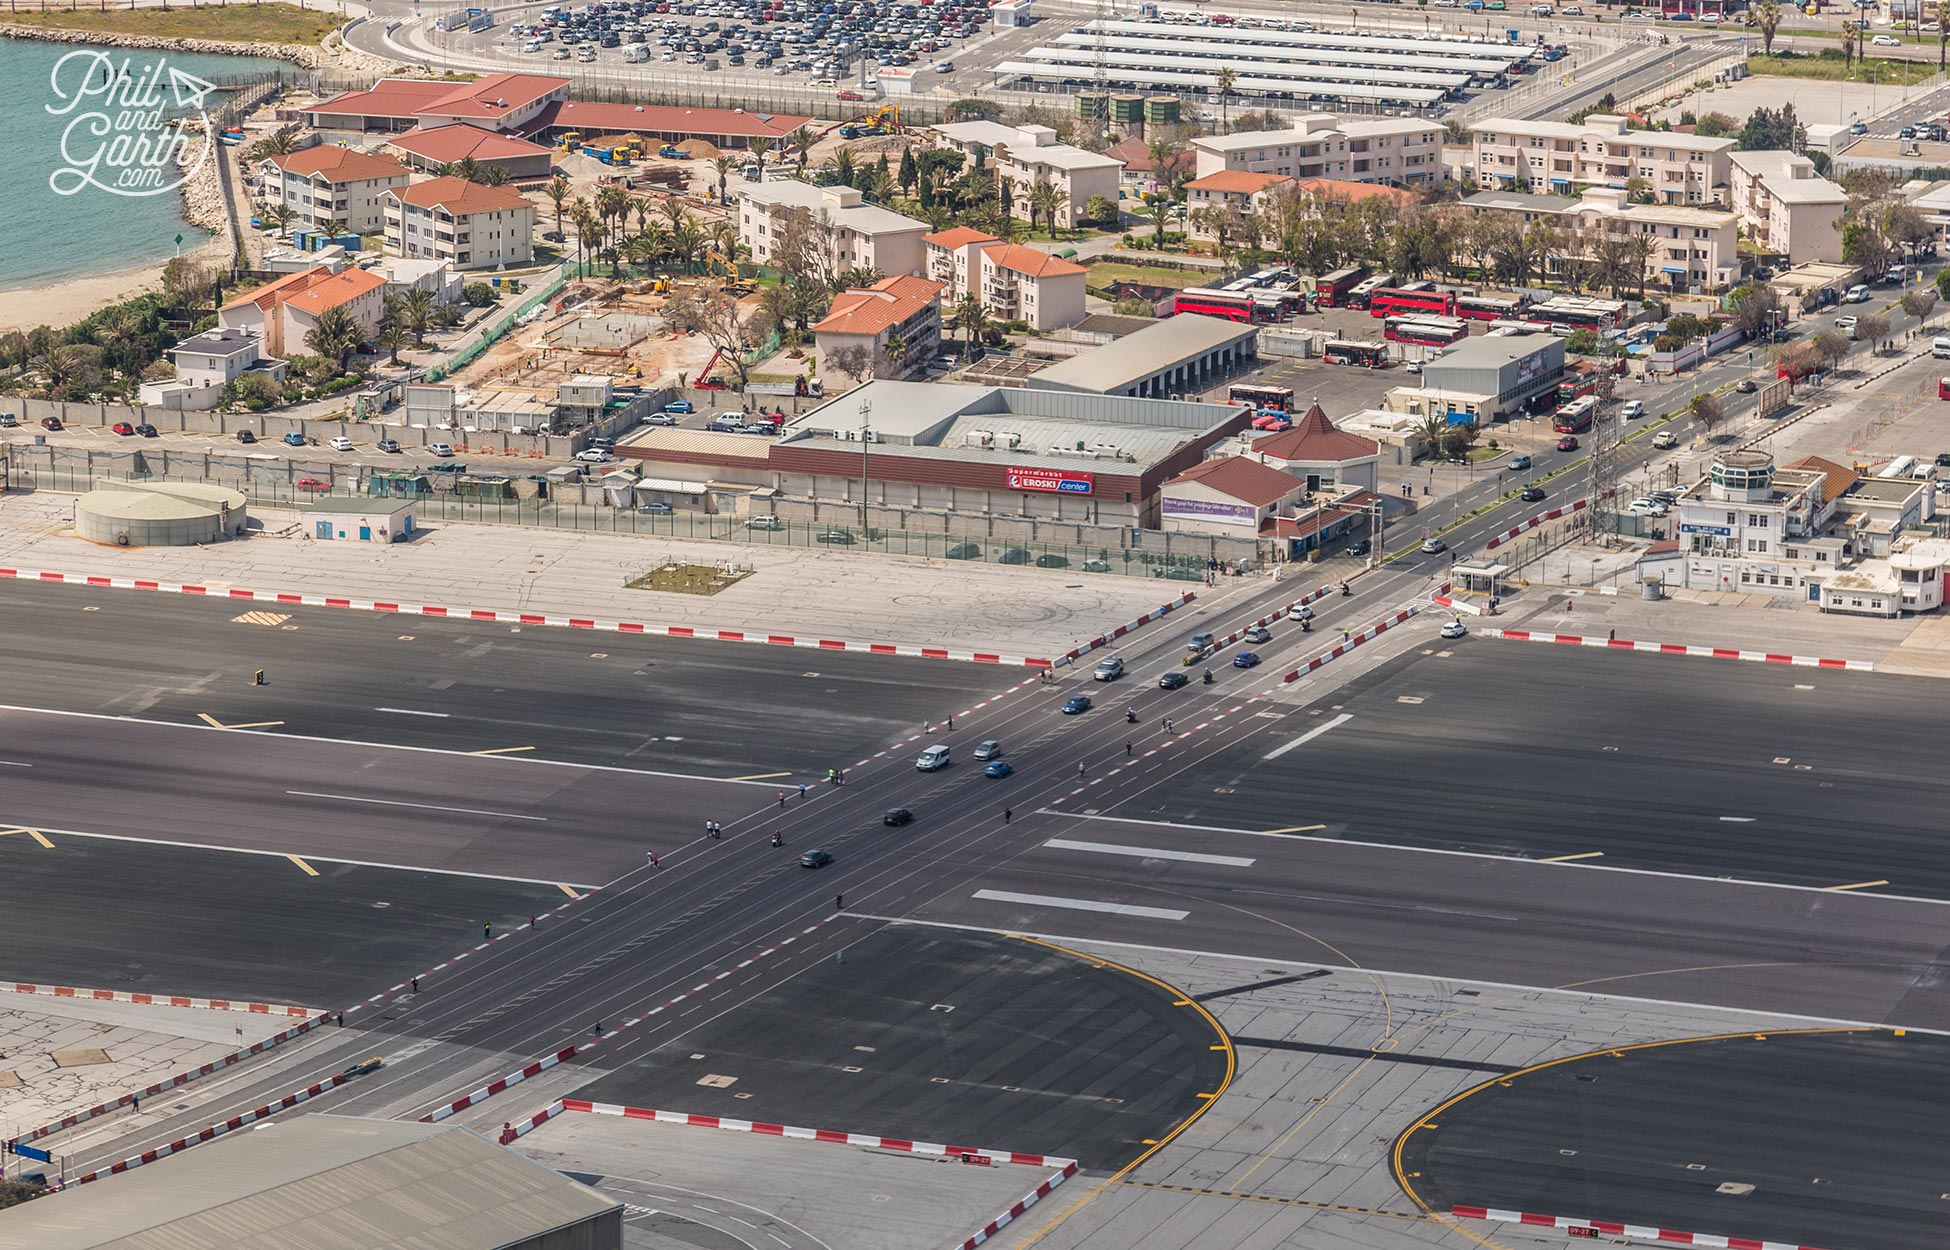 The main road into Gibraltar crosses the runway